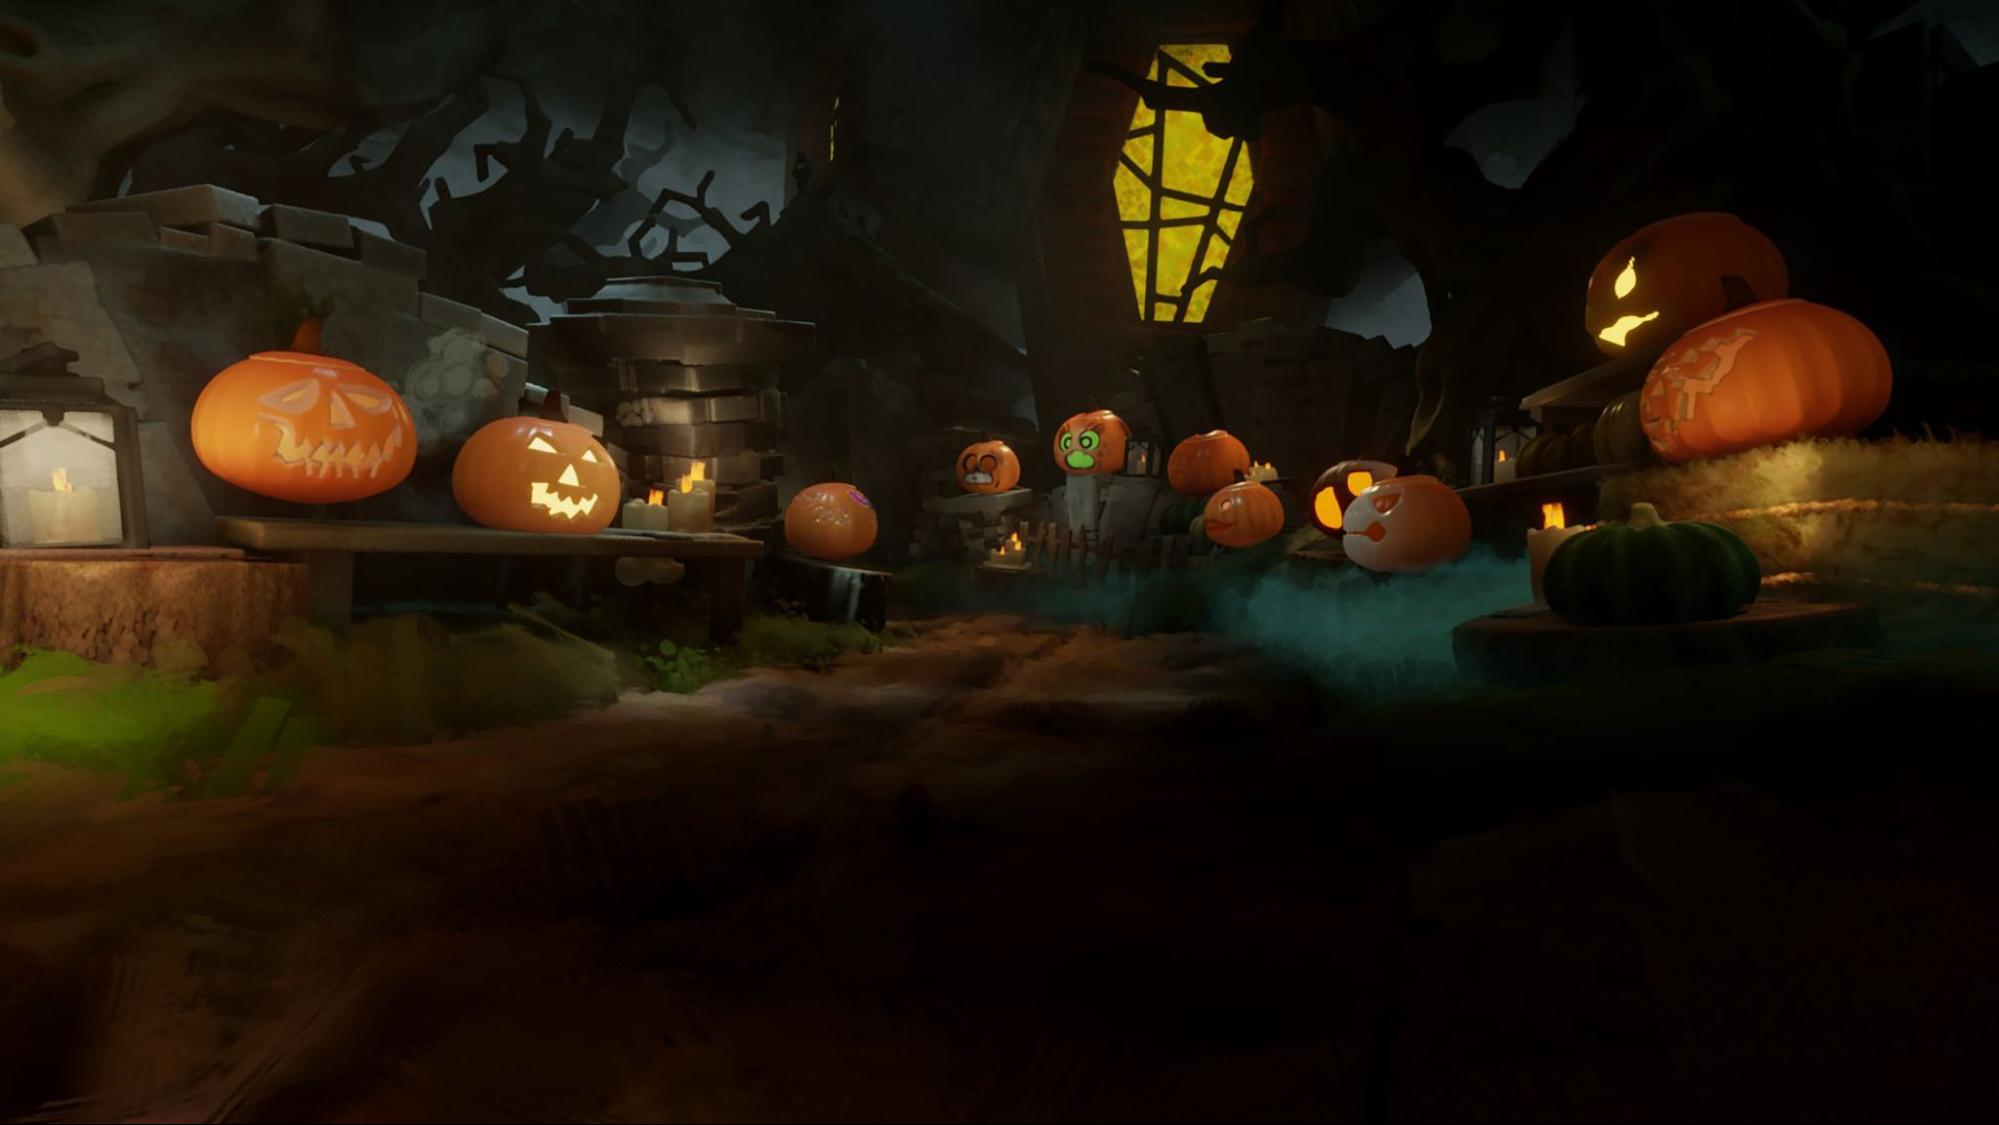 A screenshot of the pumpkin patch from All Hallows' Dreams 2020.